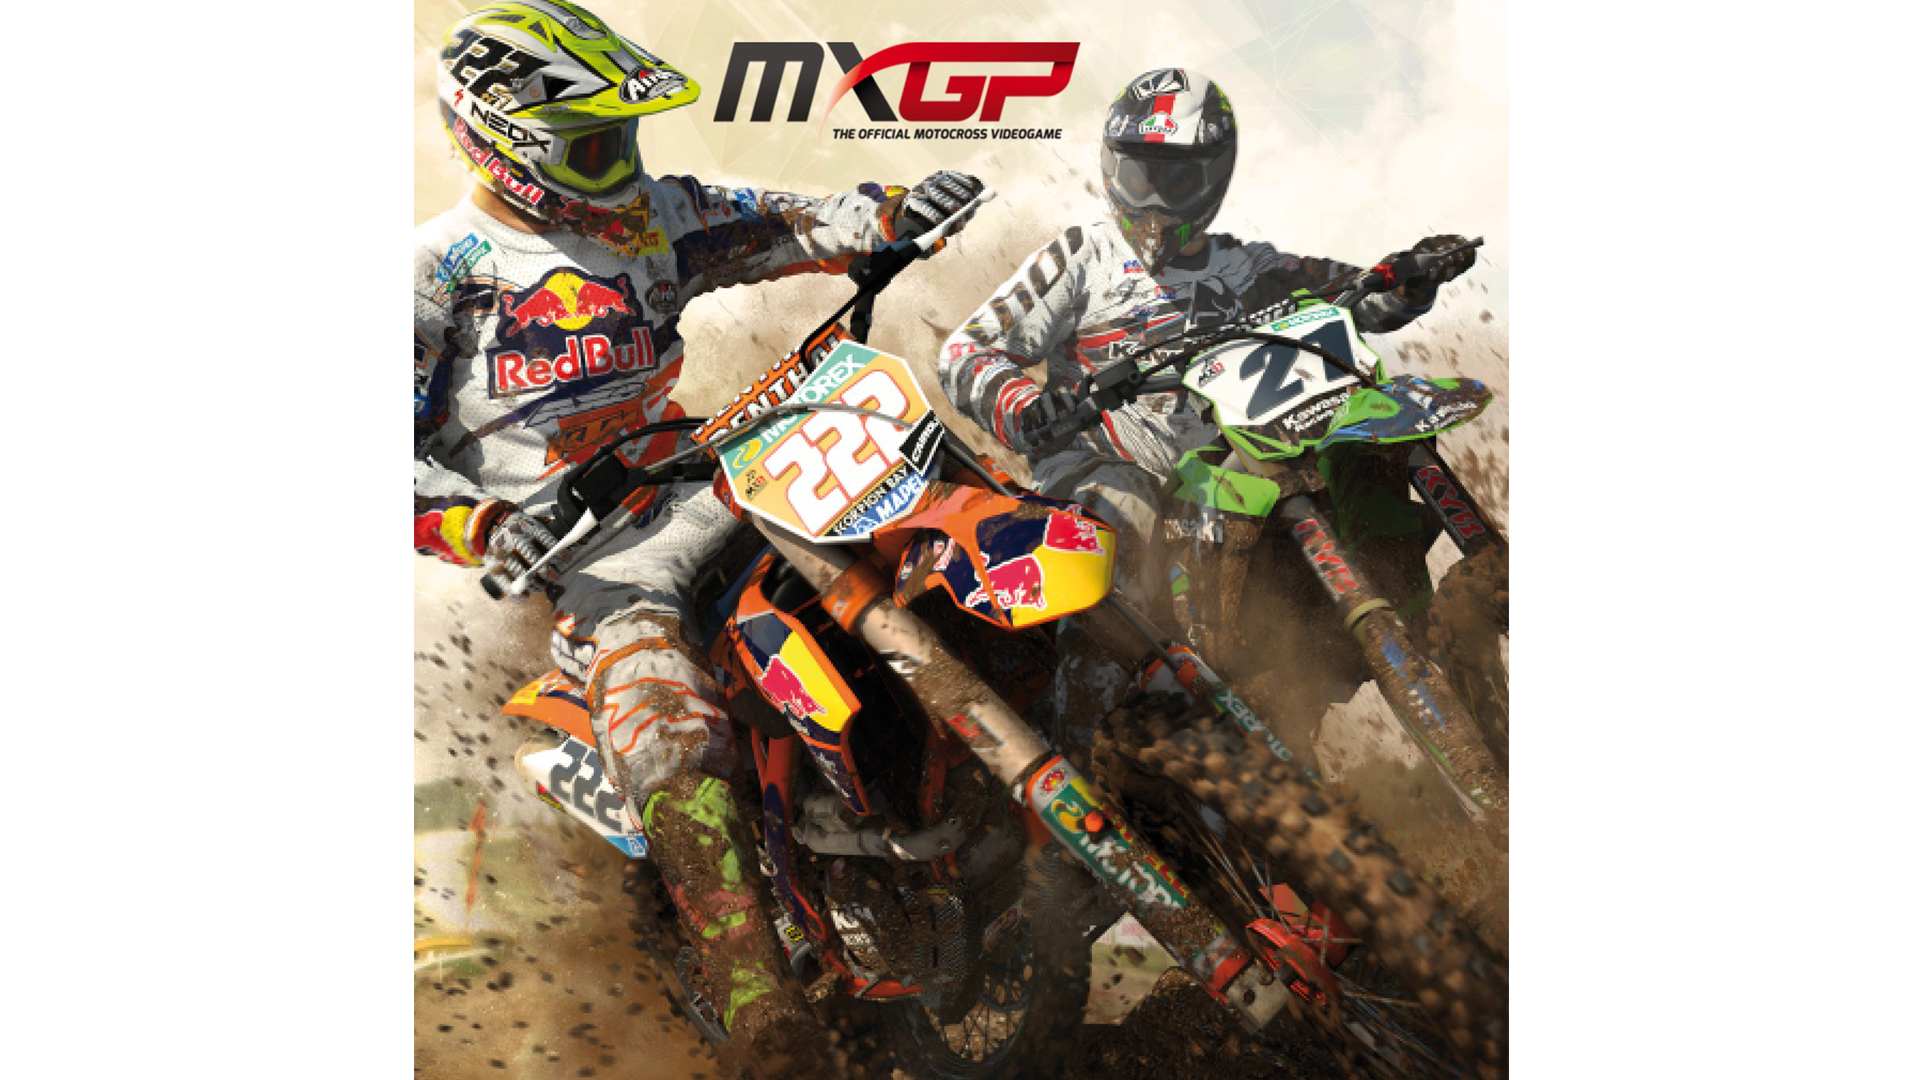 MXGP - The Official Motocross Videogame Game   PS4